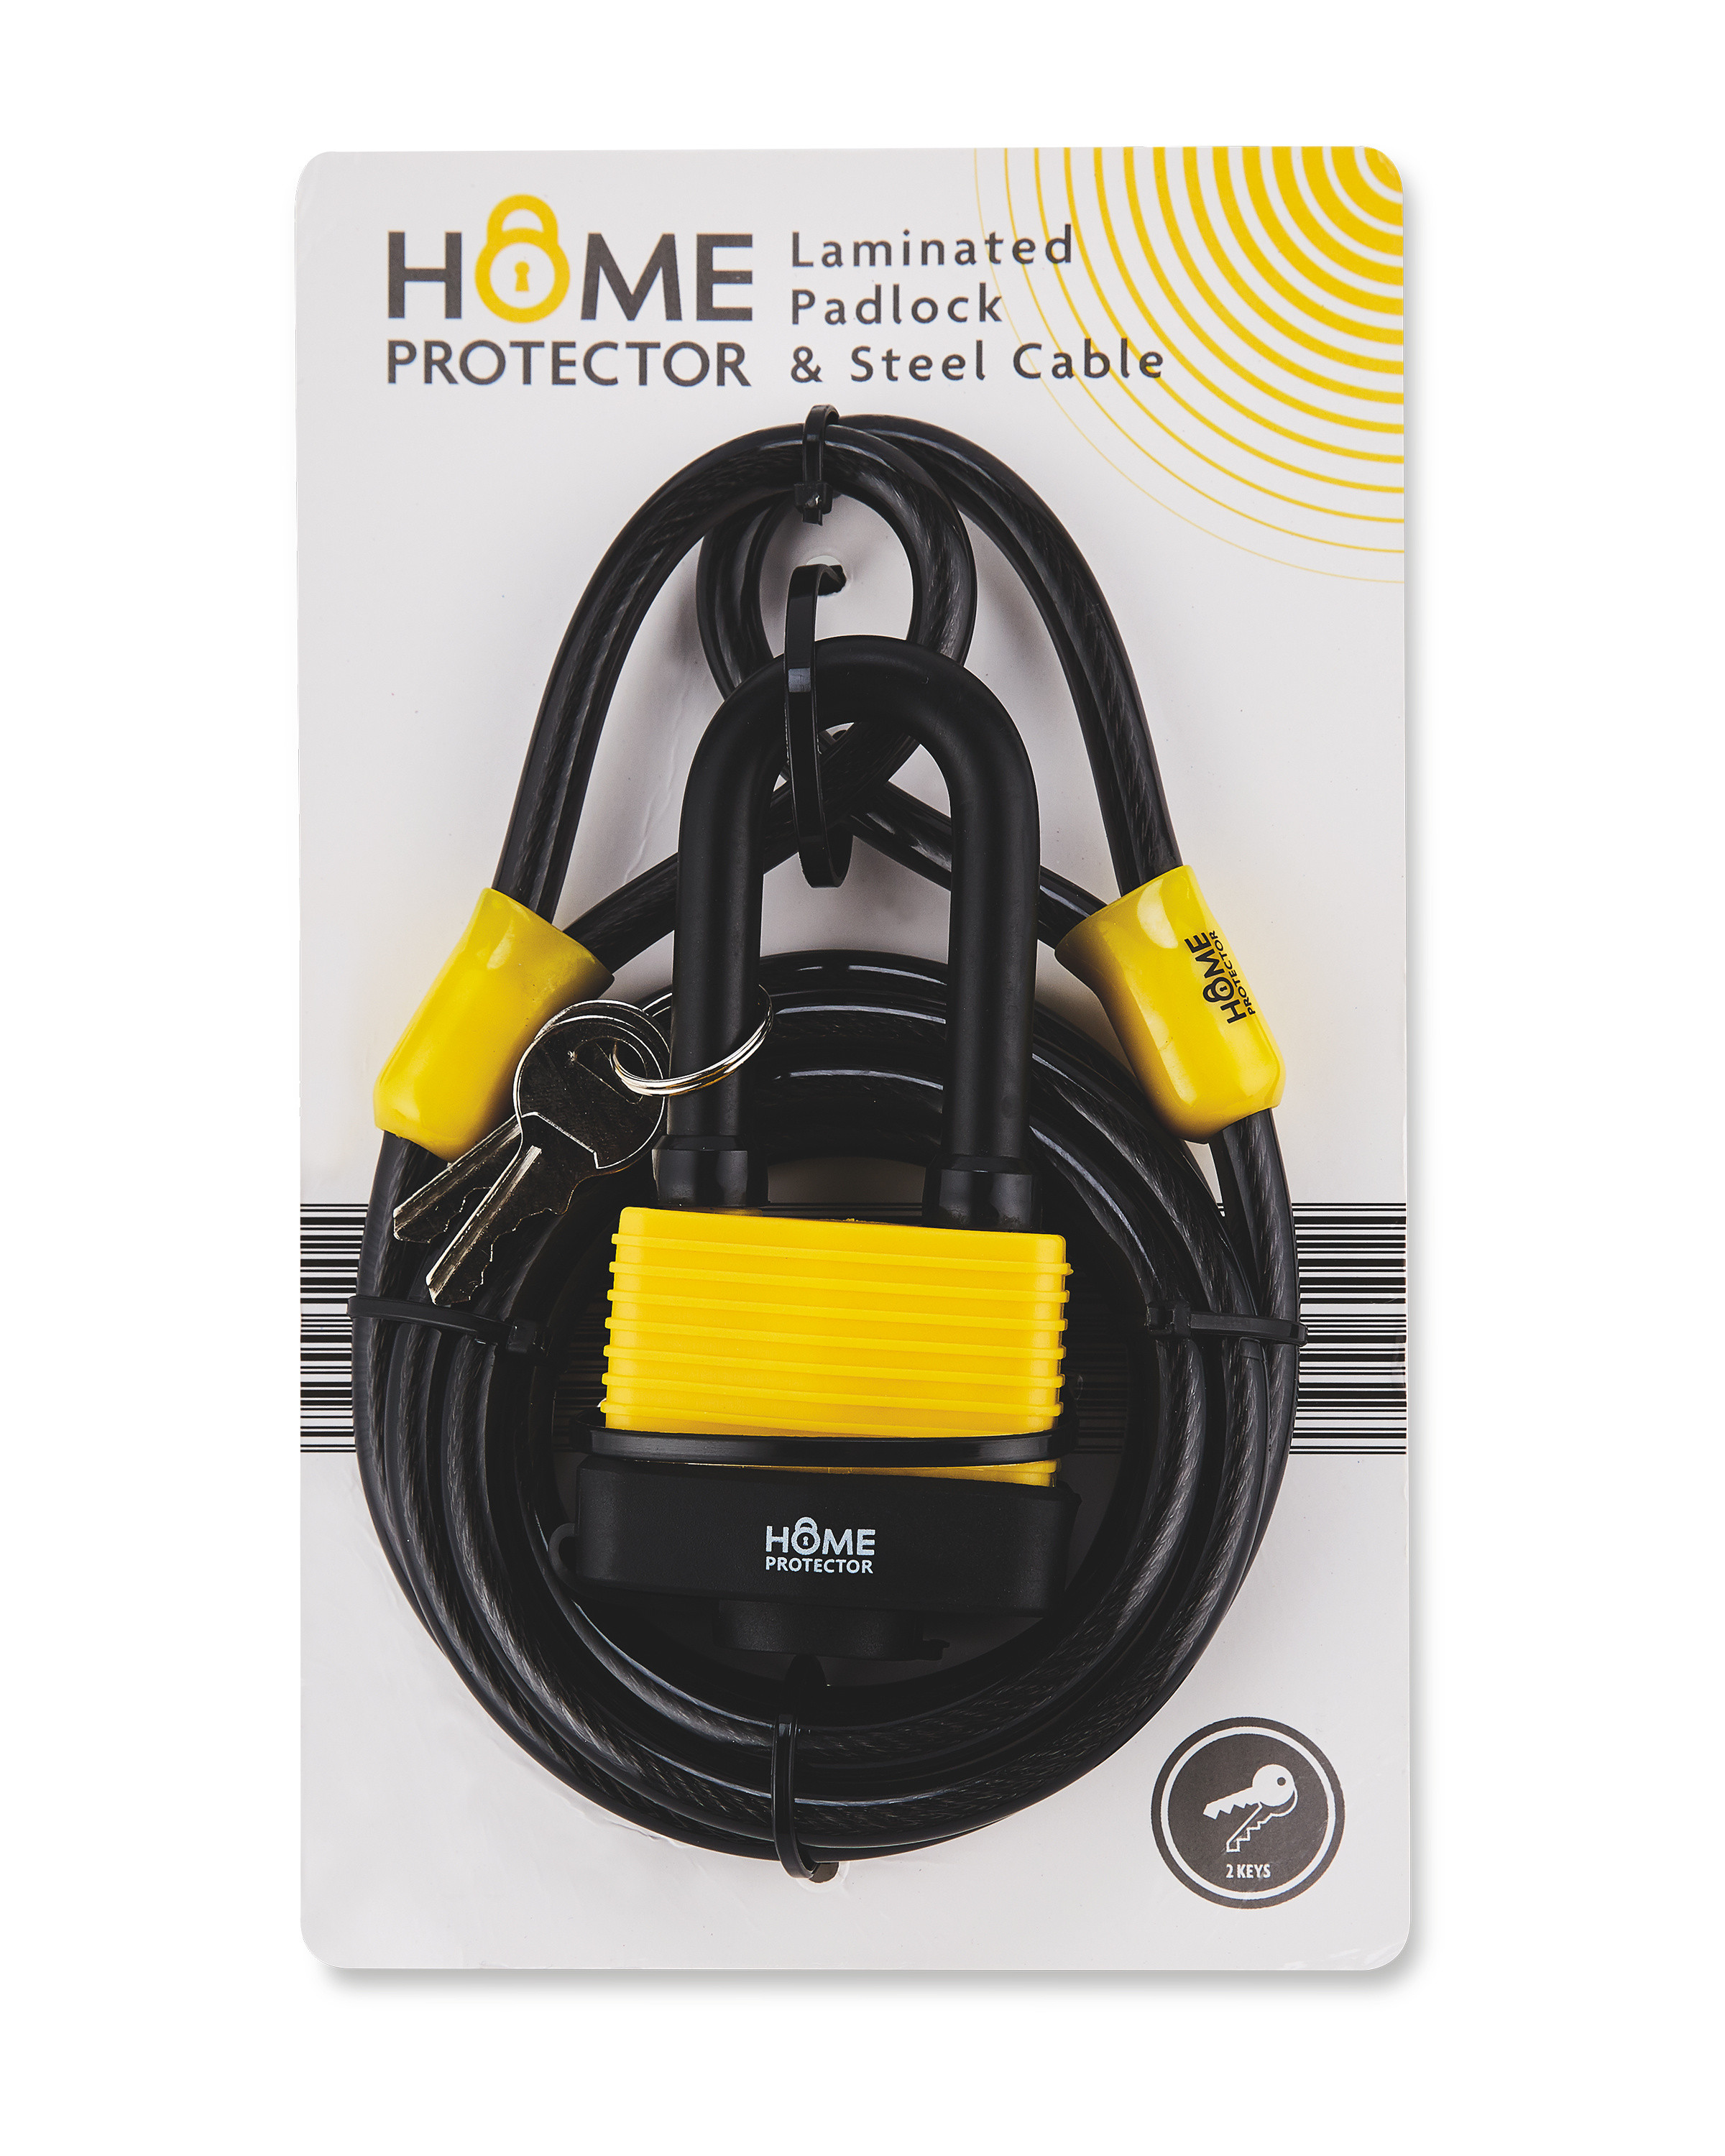 Home Protector Padlock & Cable